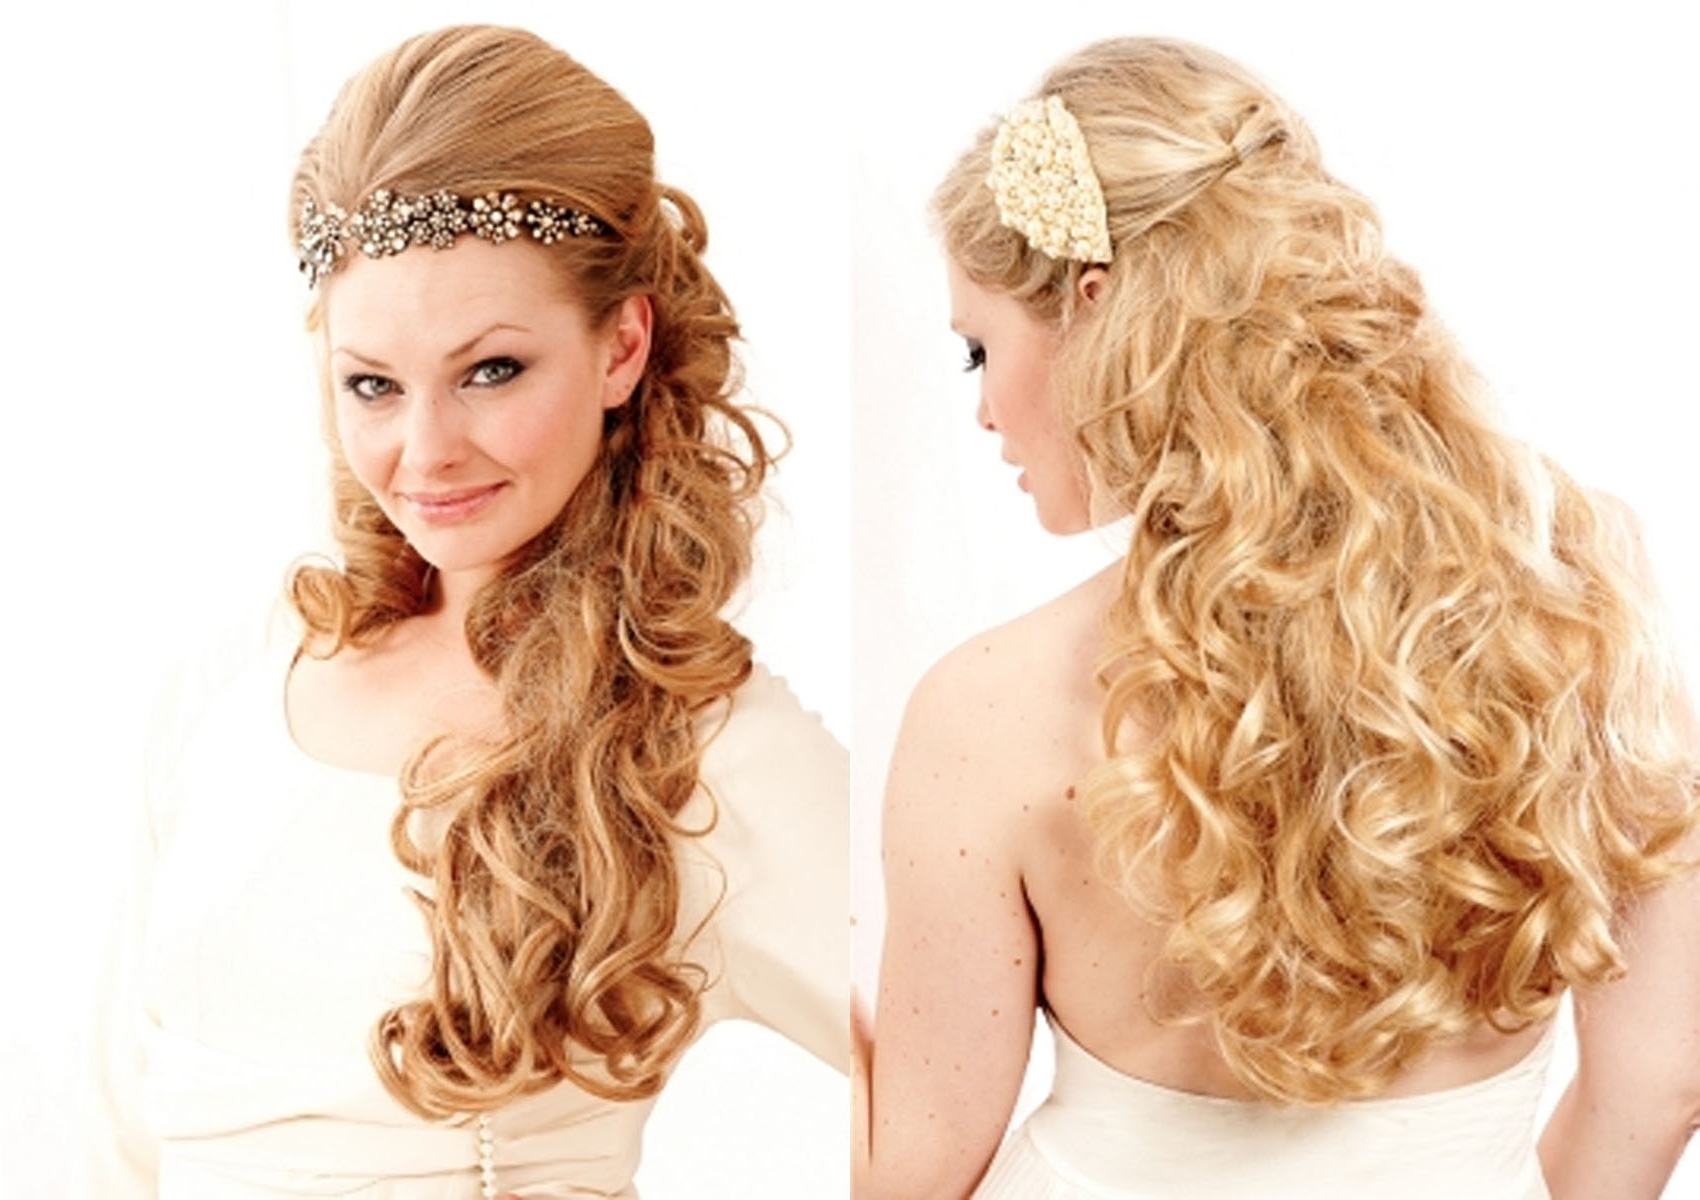 Curly Hairdos For Medium Length Hair – Hairstyle For Women & Man Throughout Most Recent Modern Wedding Hairstyles For Medium Length Hair (View 12 of 15)